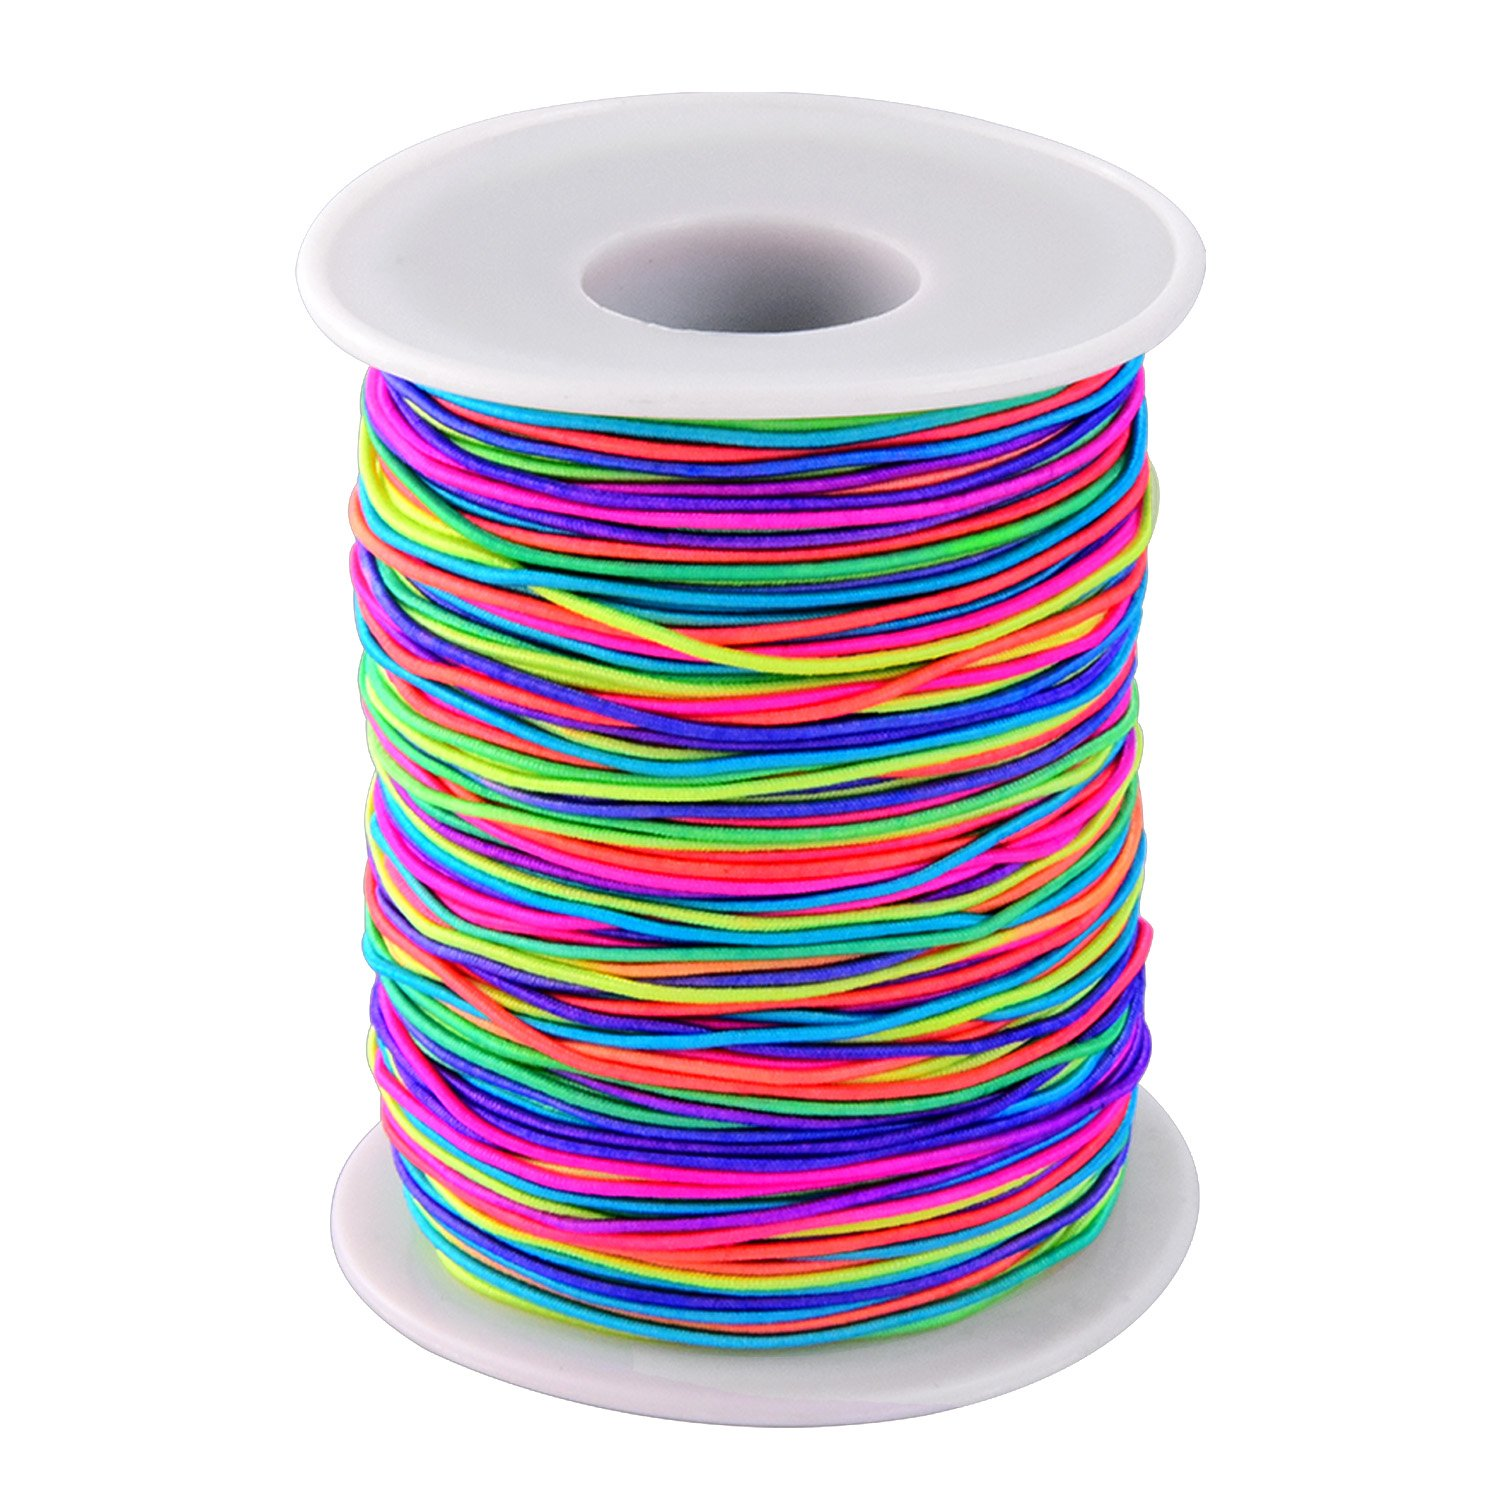 Outus 1 mm Elastic Cord Beading Threads Stretch String Fabric Crafting Cords for Jewelry Making (Rainbow, 100 m) 4336807088